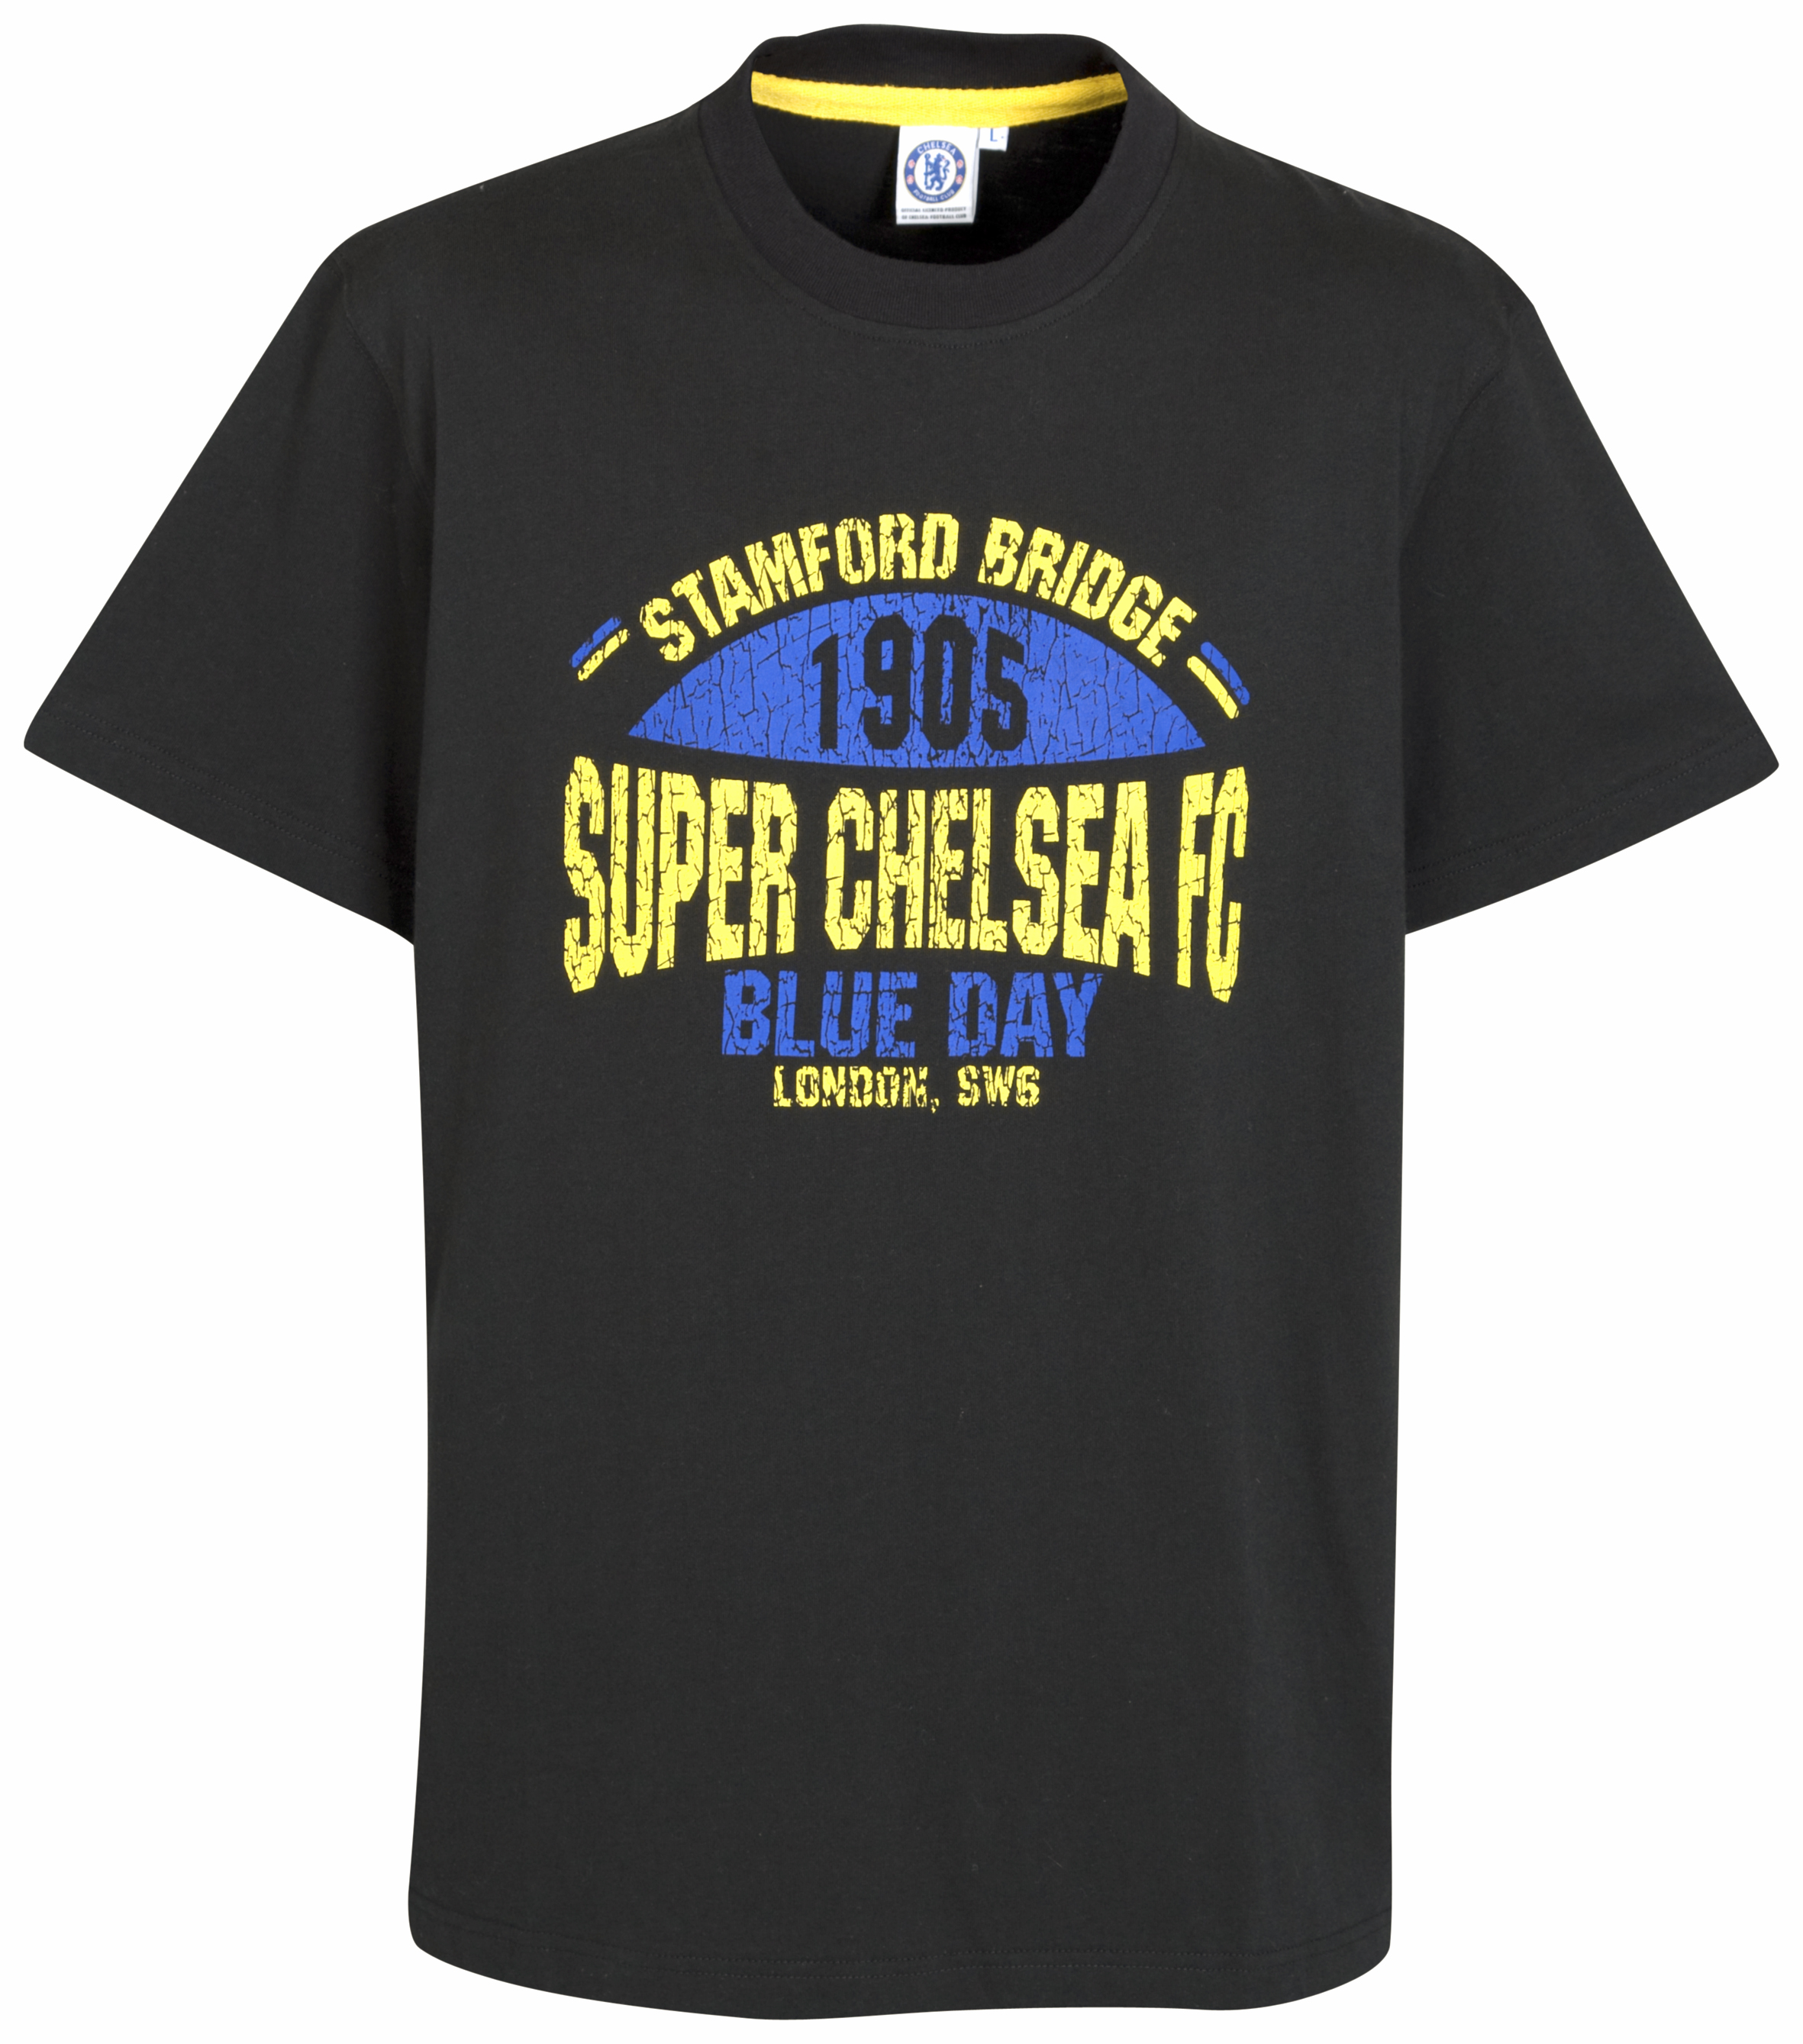 Chelsea Super Chelsea retro Graphic T Shirt Black